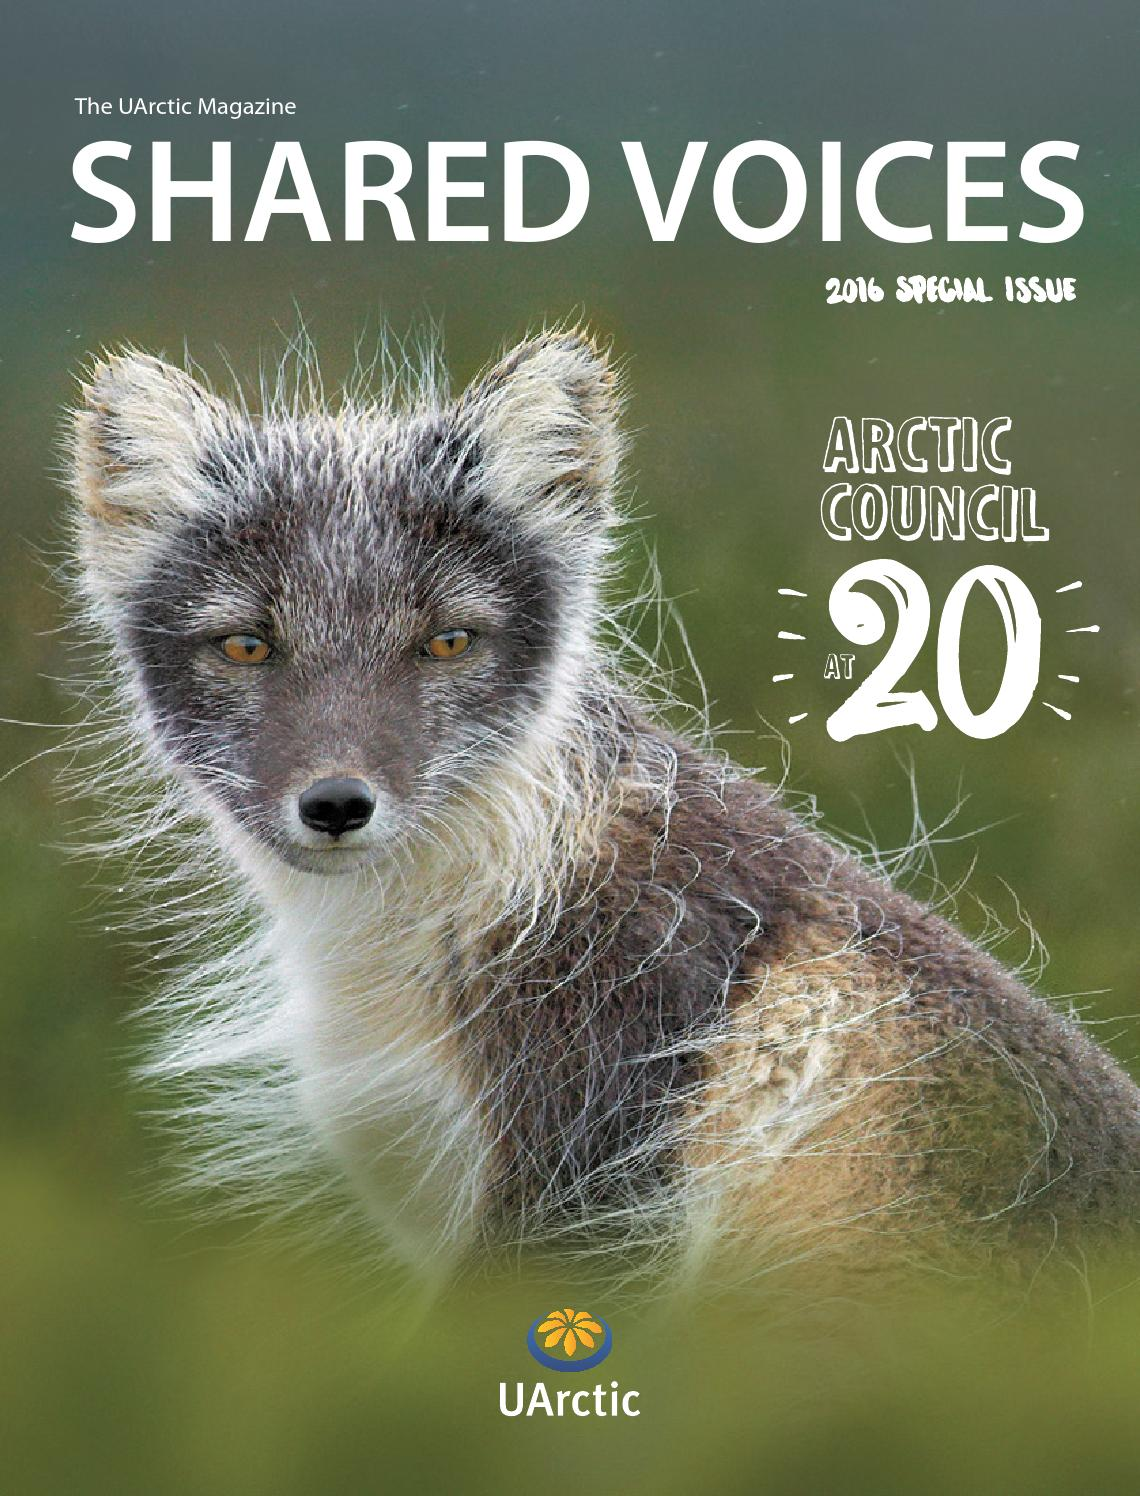 Uarctic Shared Voices Magazine 2016 Special Issue Arctic Council At 19871989 Gauge Cluster Circuit Board 20 By Issuu